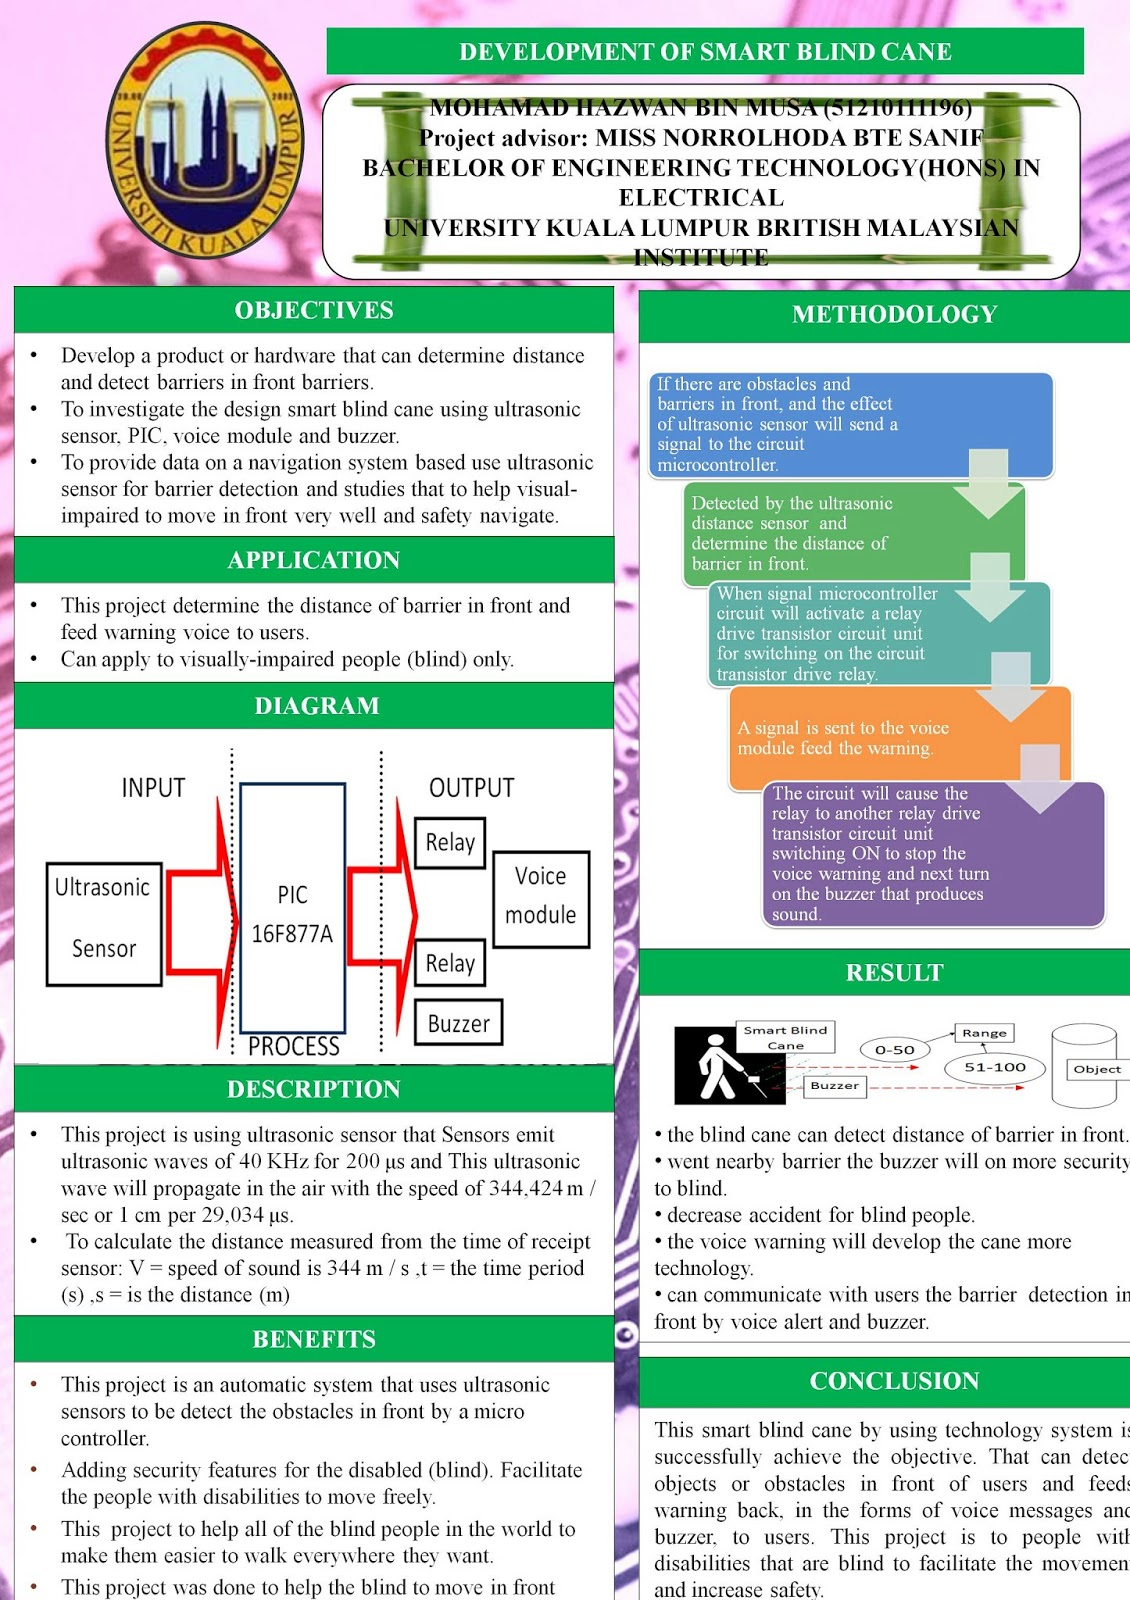 Development Of Smart Blind Cane Design And Do The Poster